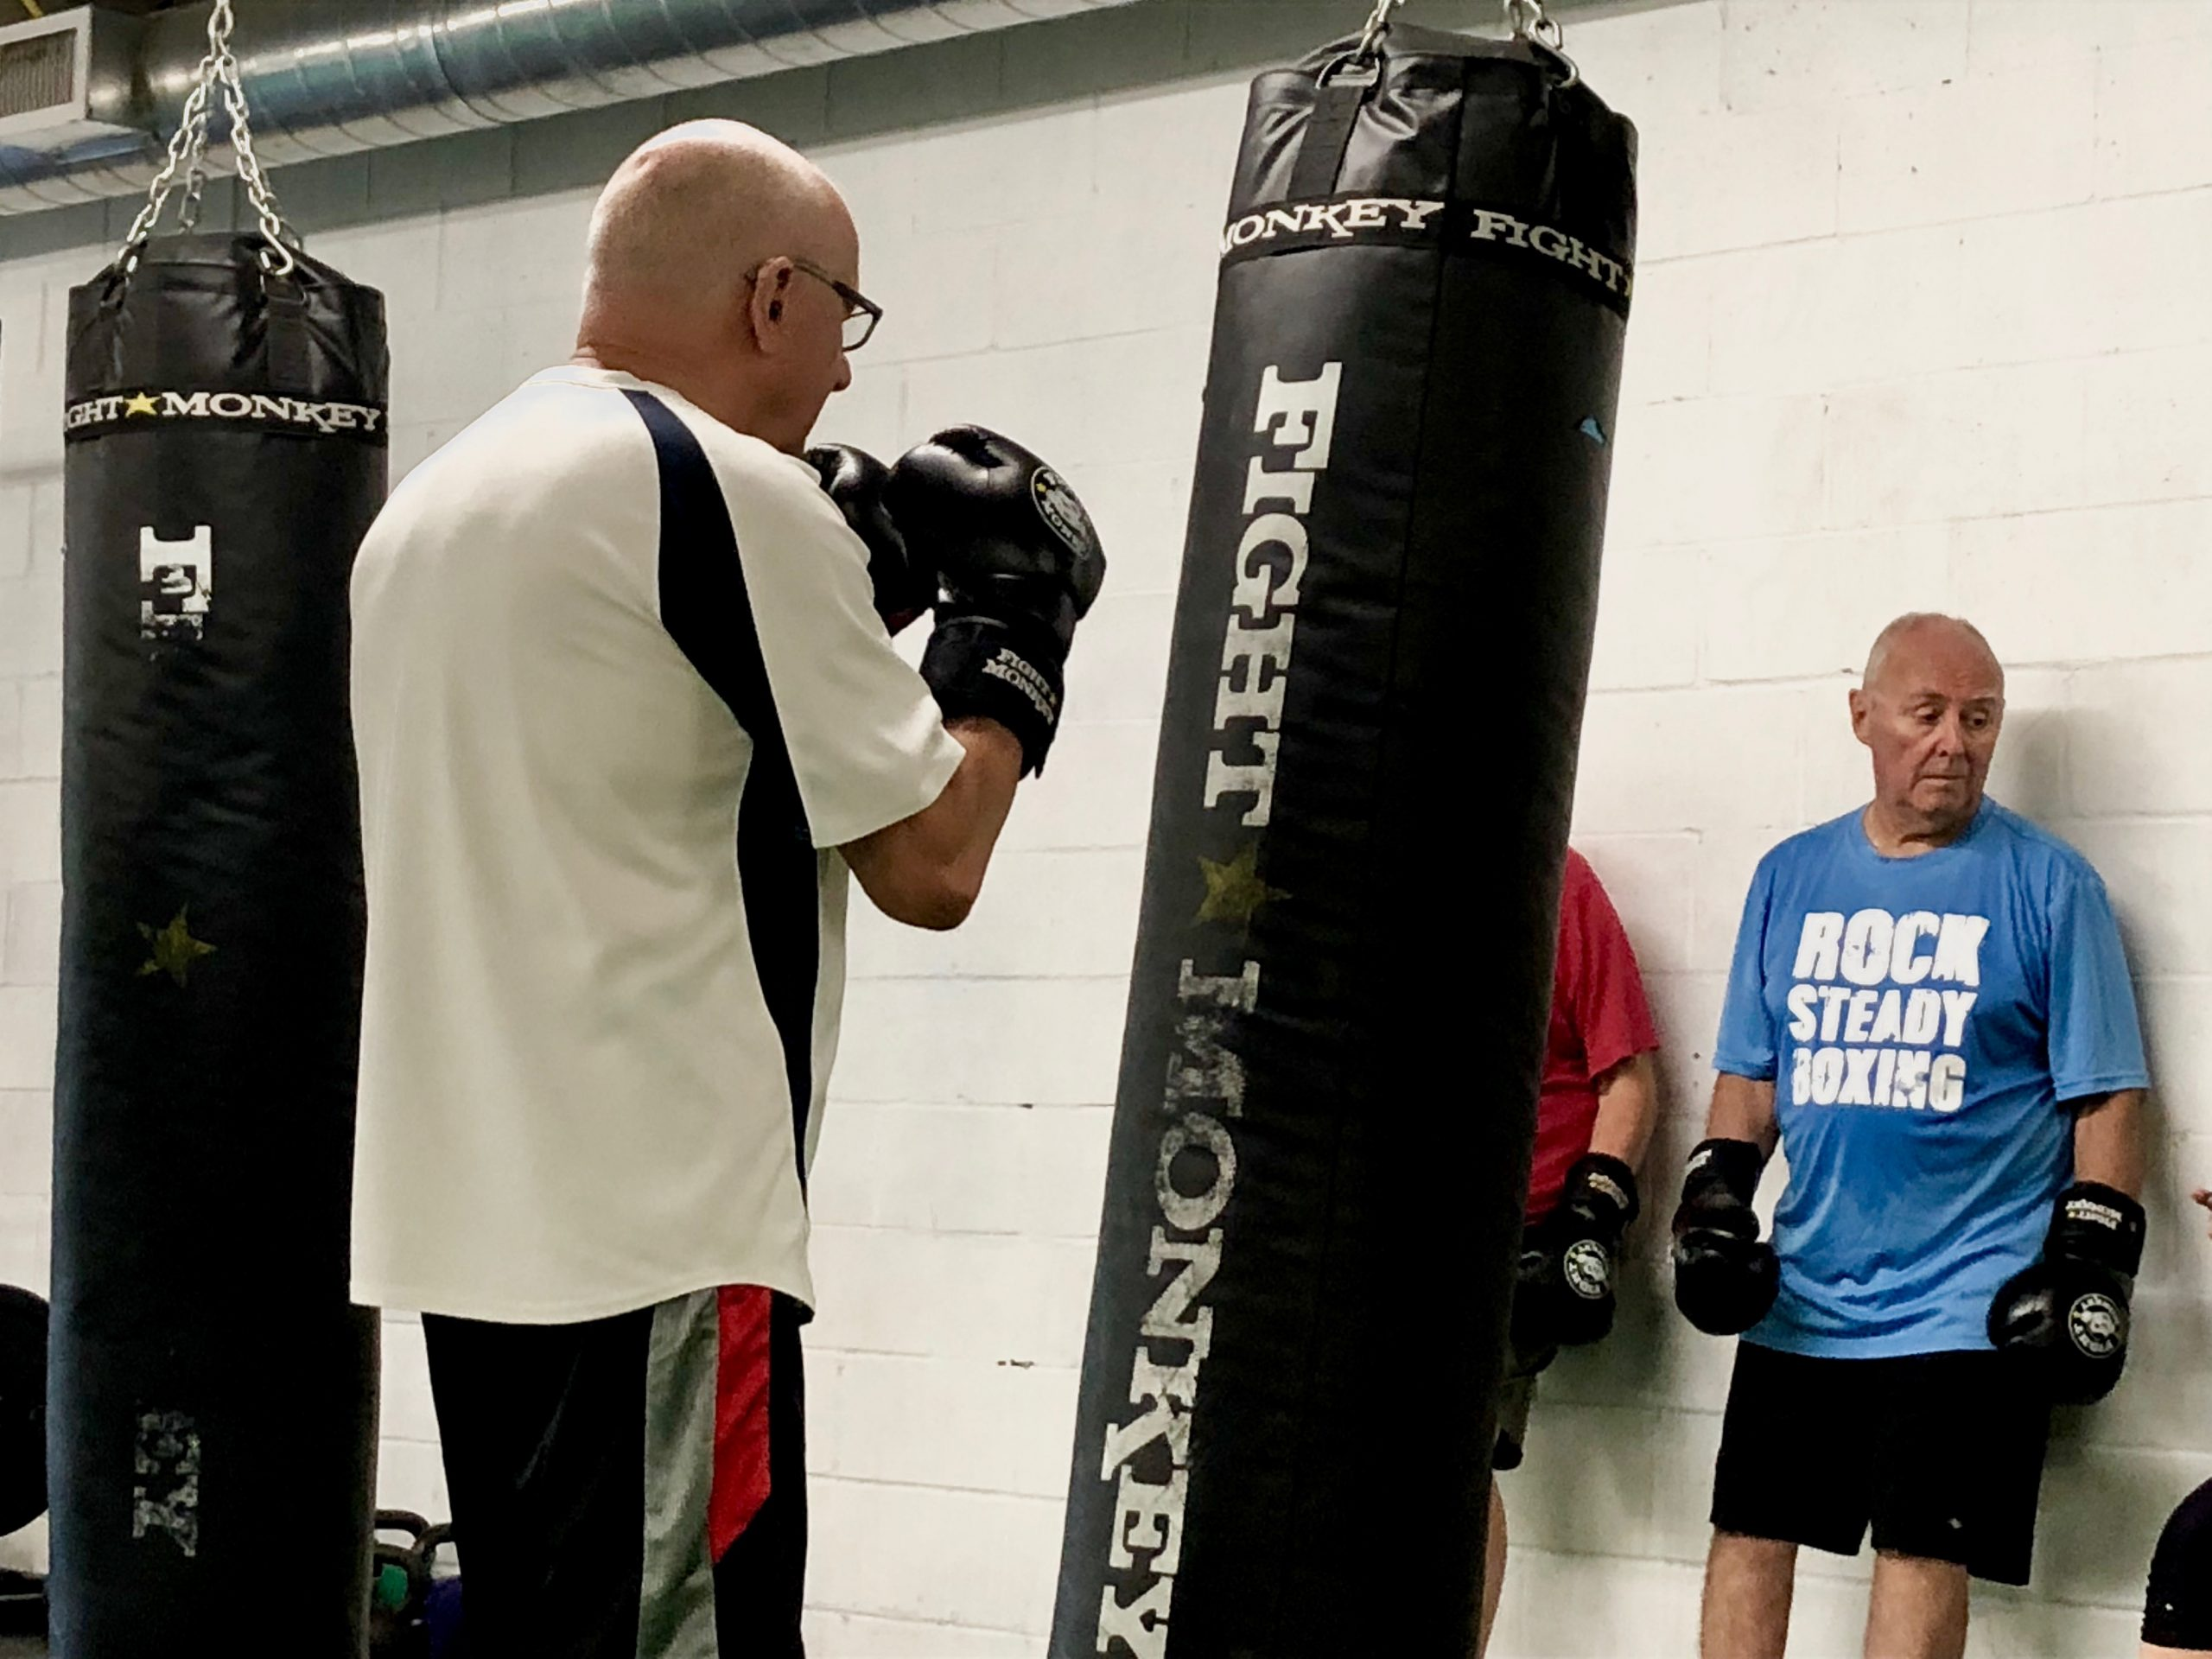 Boxing class in london for those with parkinsons